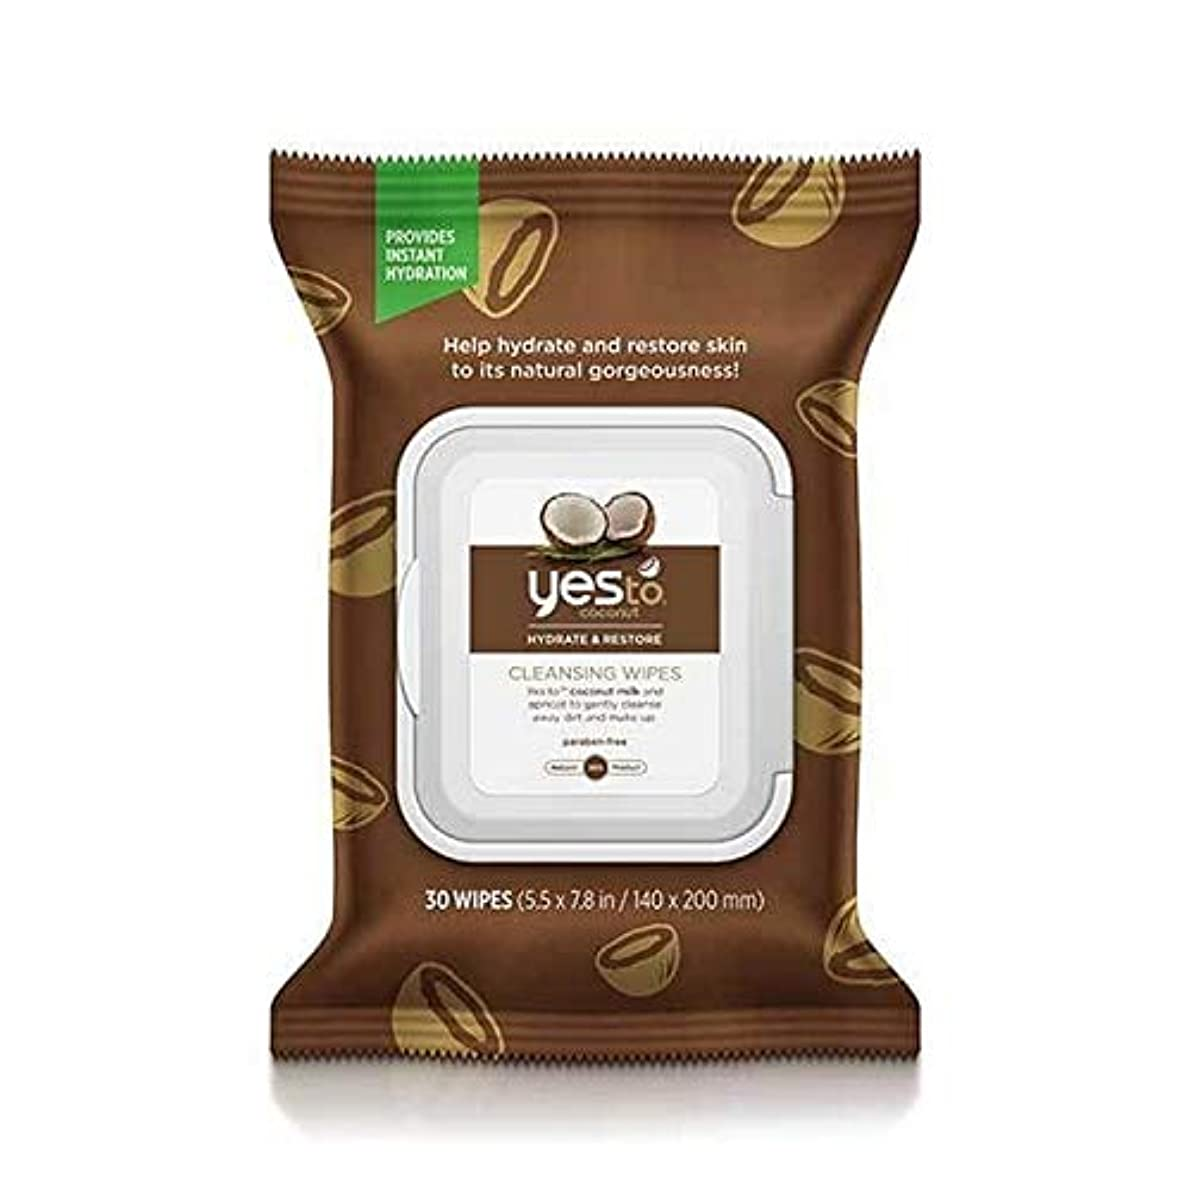 [YES TO! ] はいココナッツクレンジングワイプへ - Yes To Coconut Cleansing Wipes [並行輸入品]